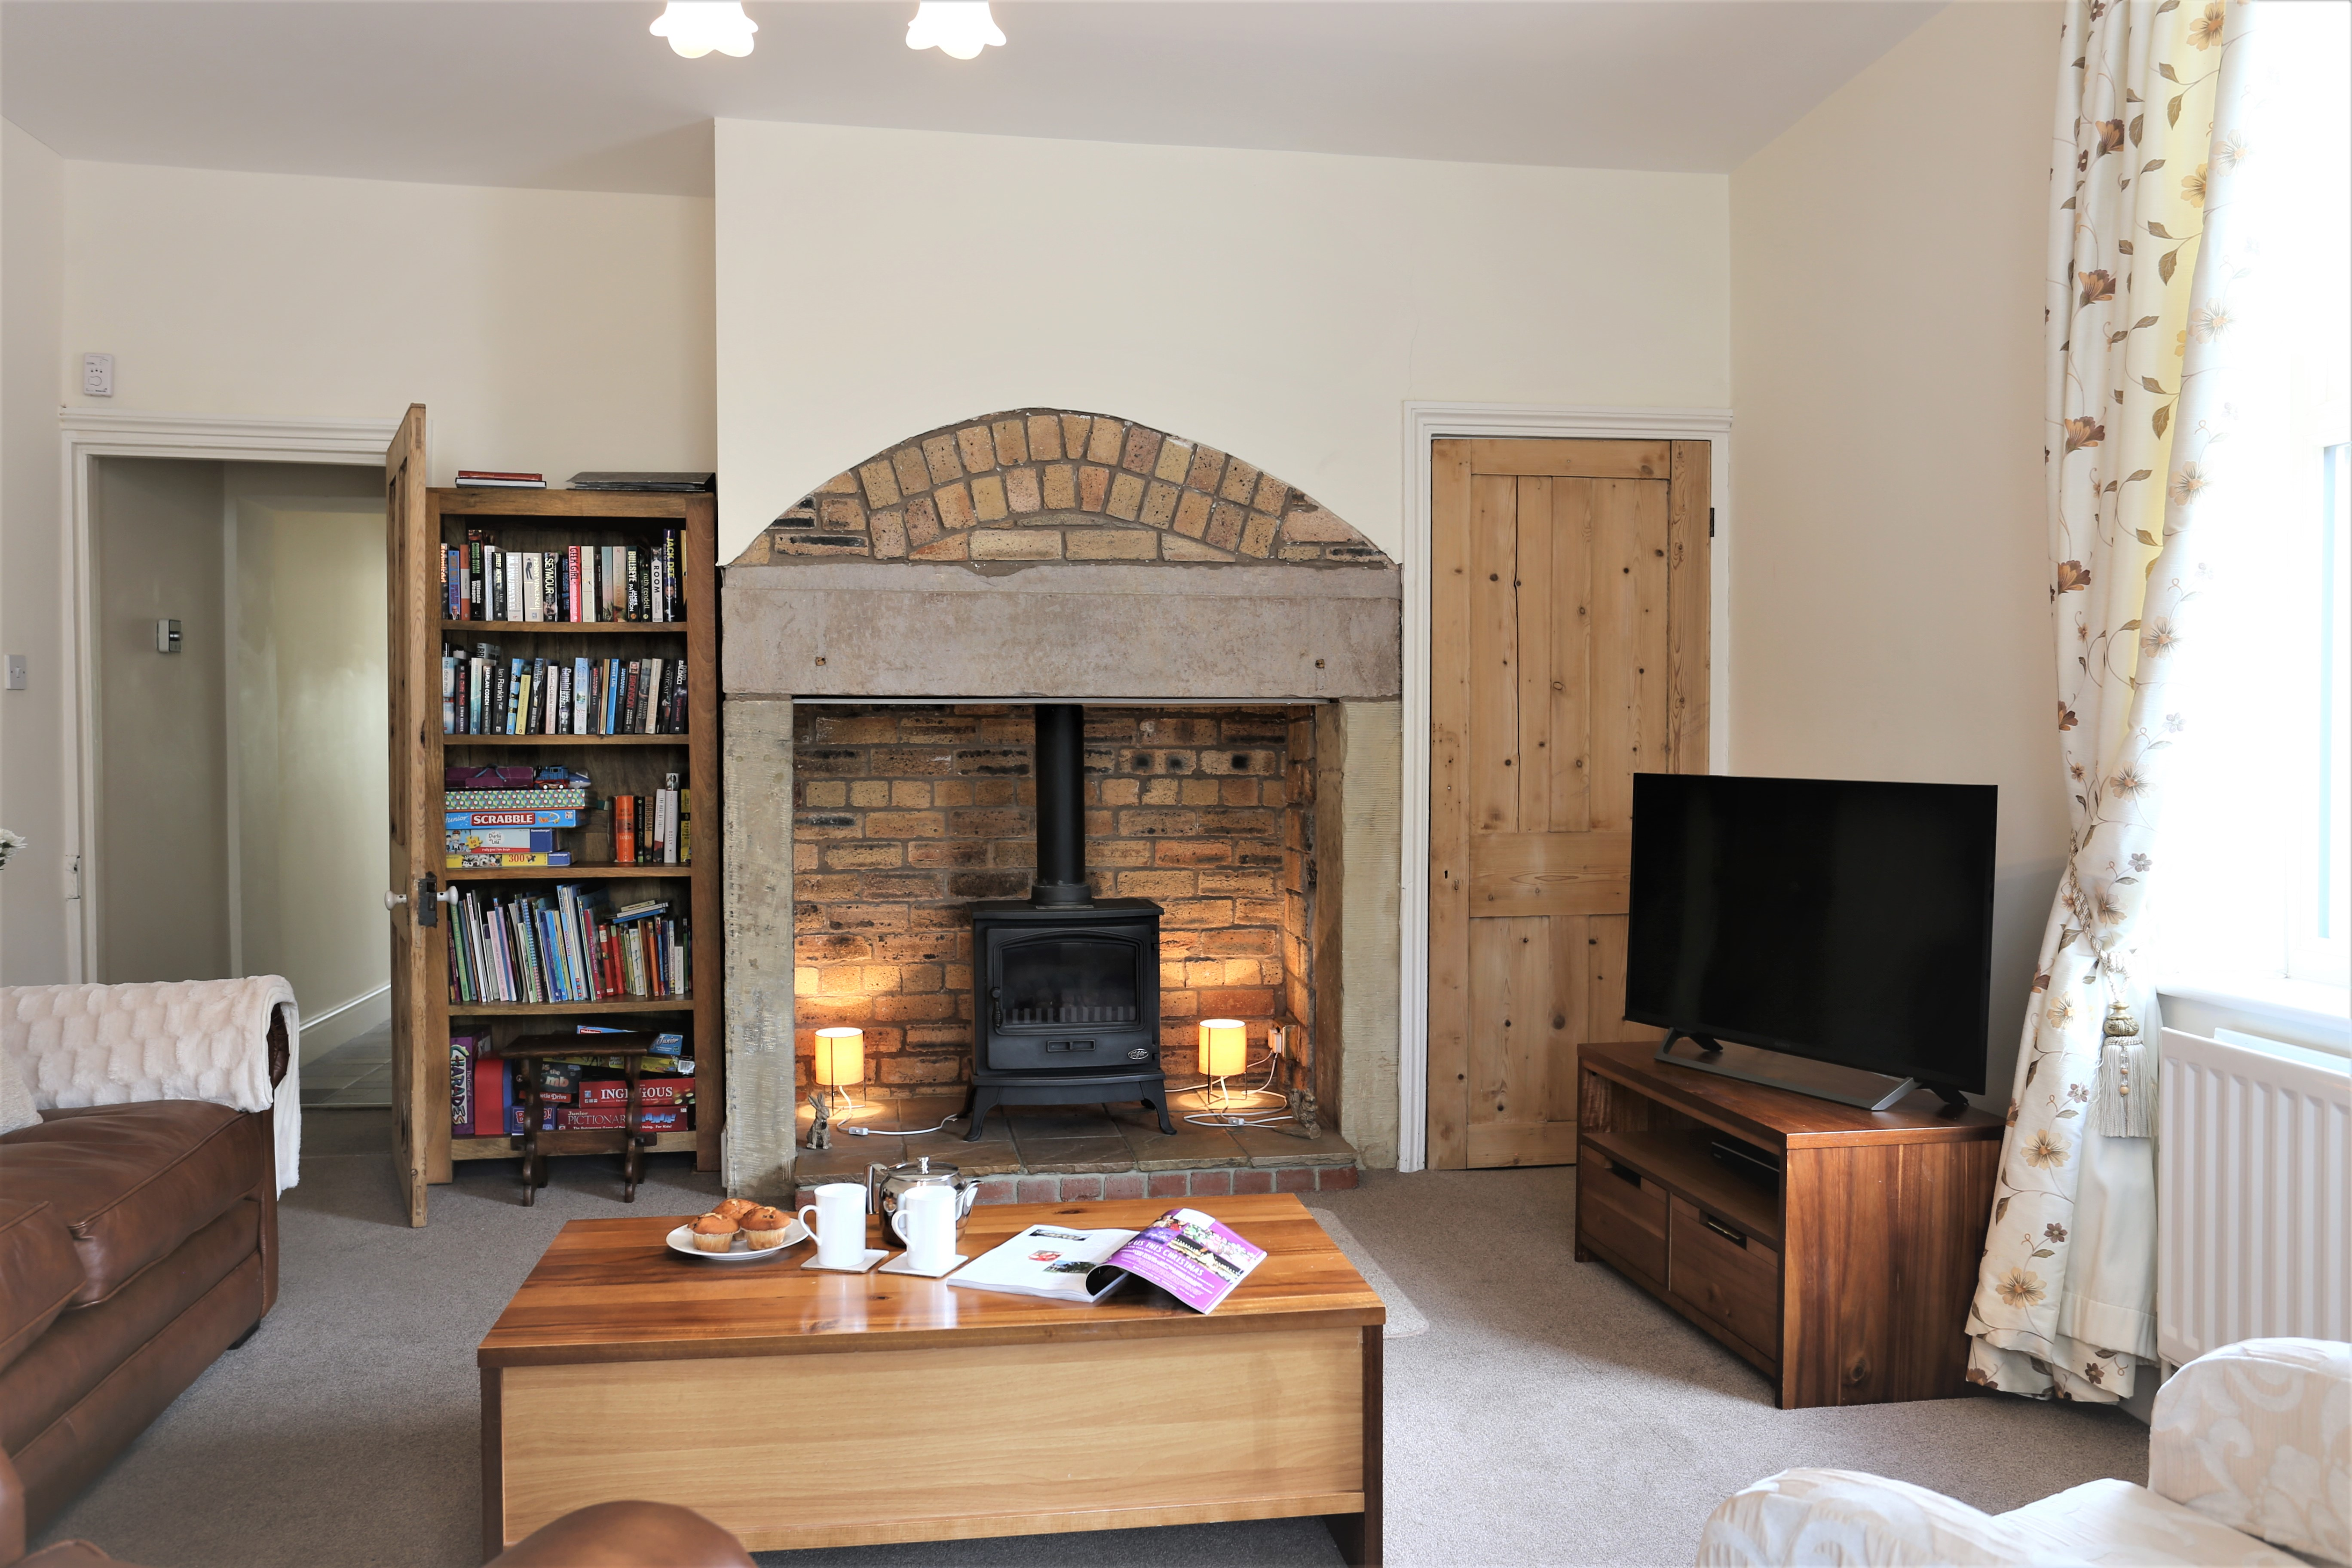 Warkworth holiday cottages with sea views river frontage, pet friendly holiday cottages in Warkworth